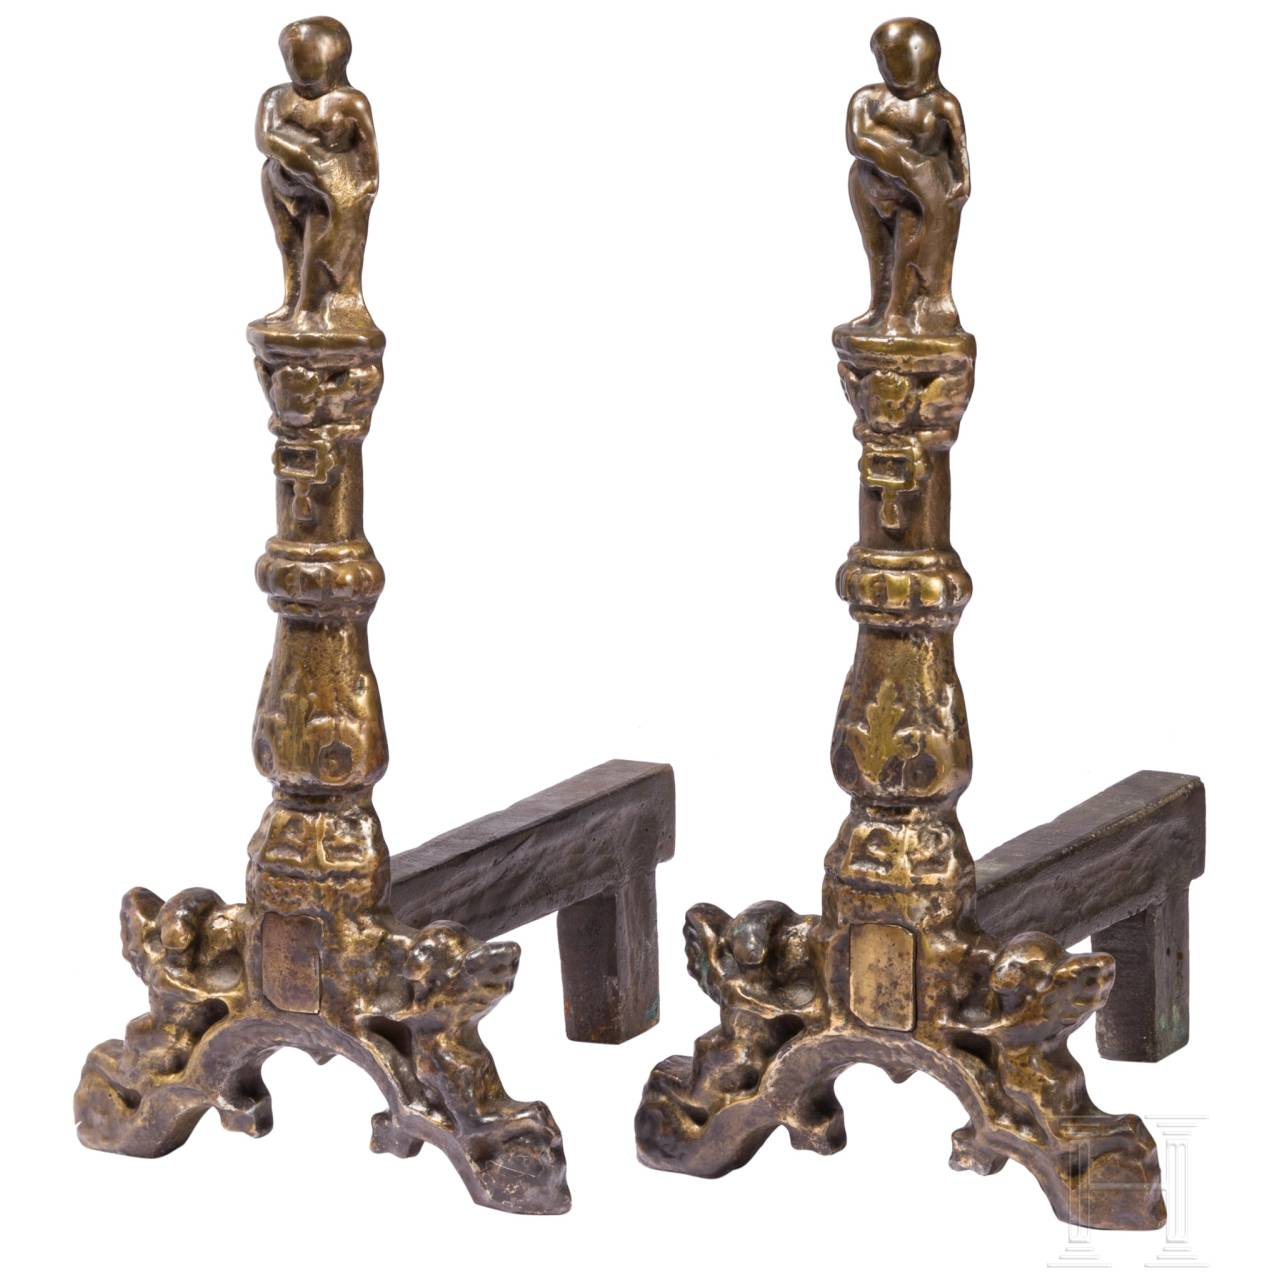 A pair of German Renaissance andirons, mid-16th century